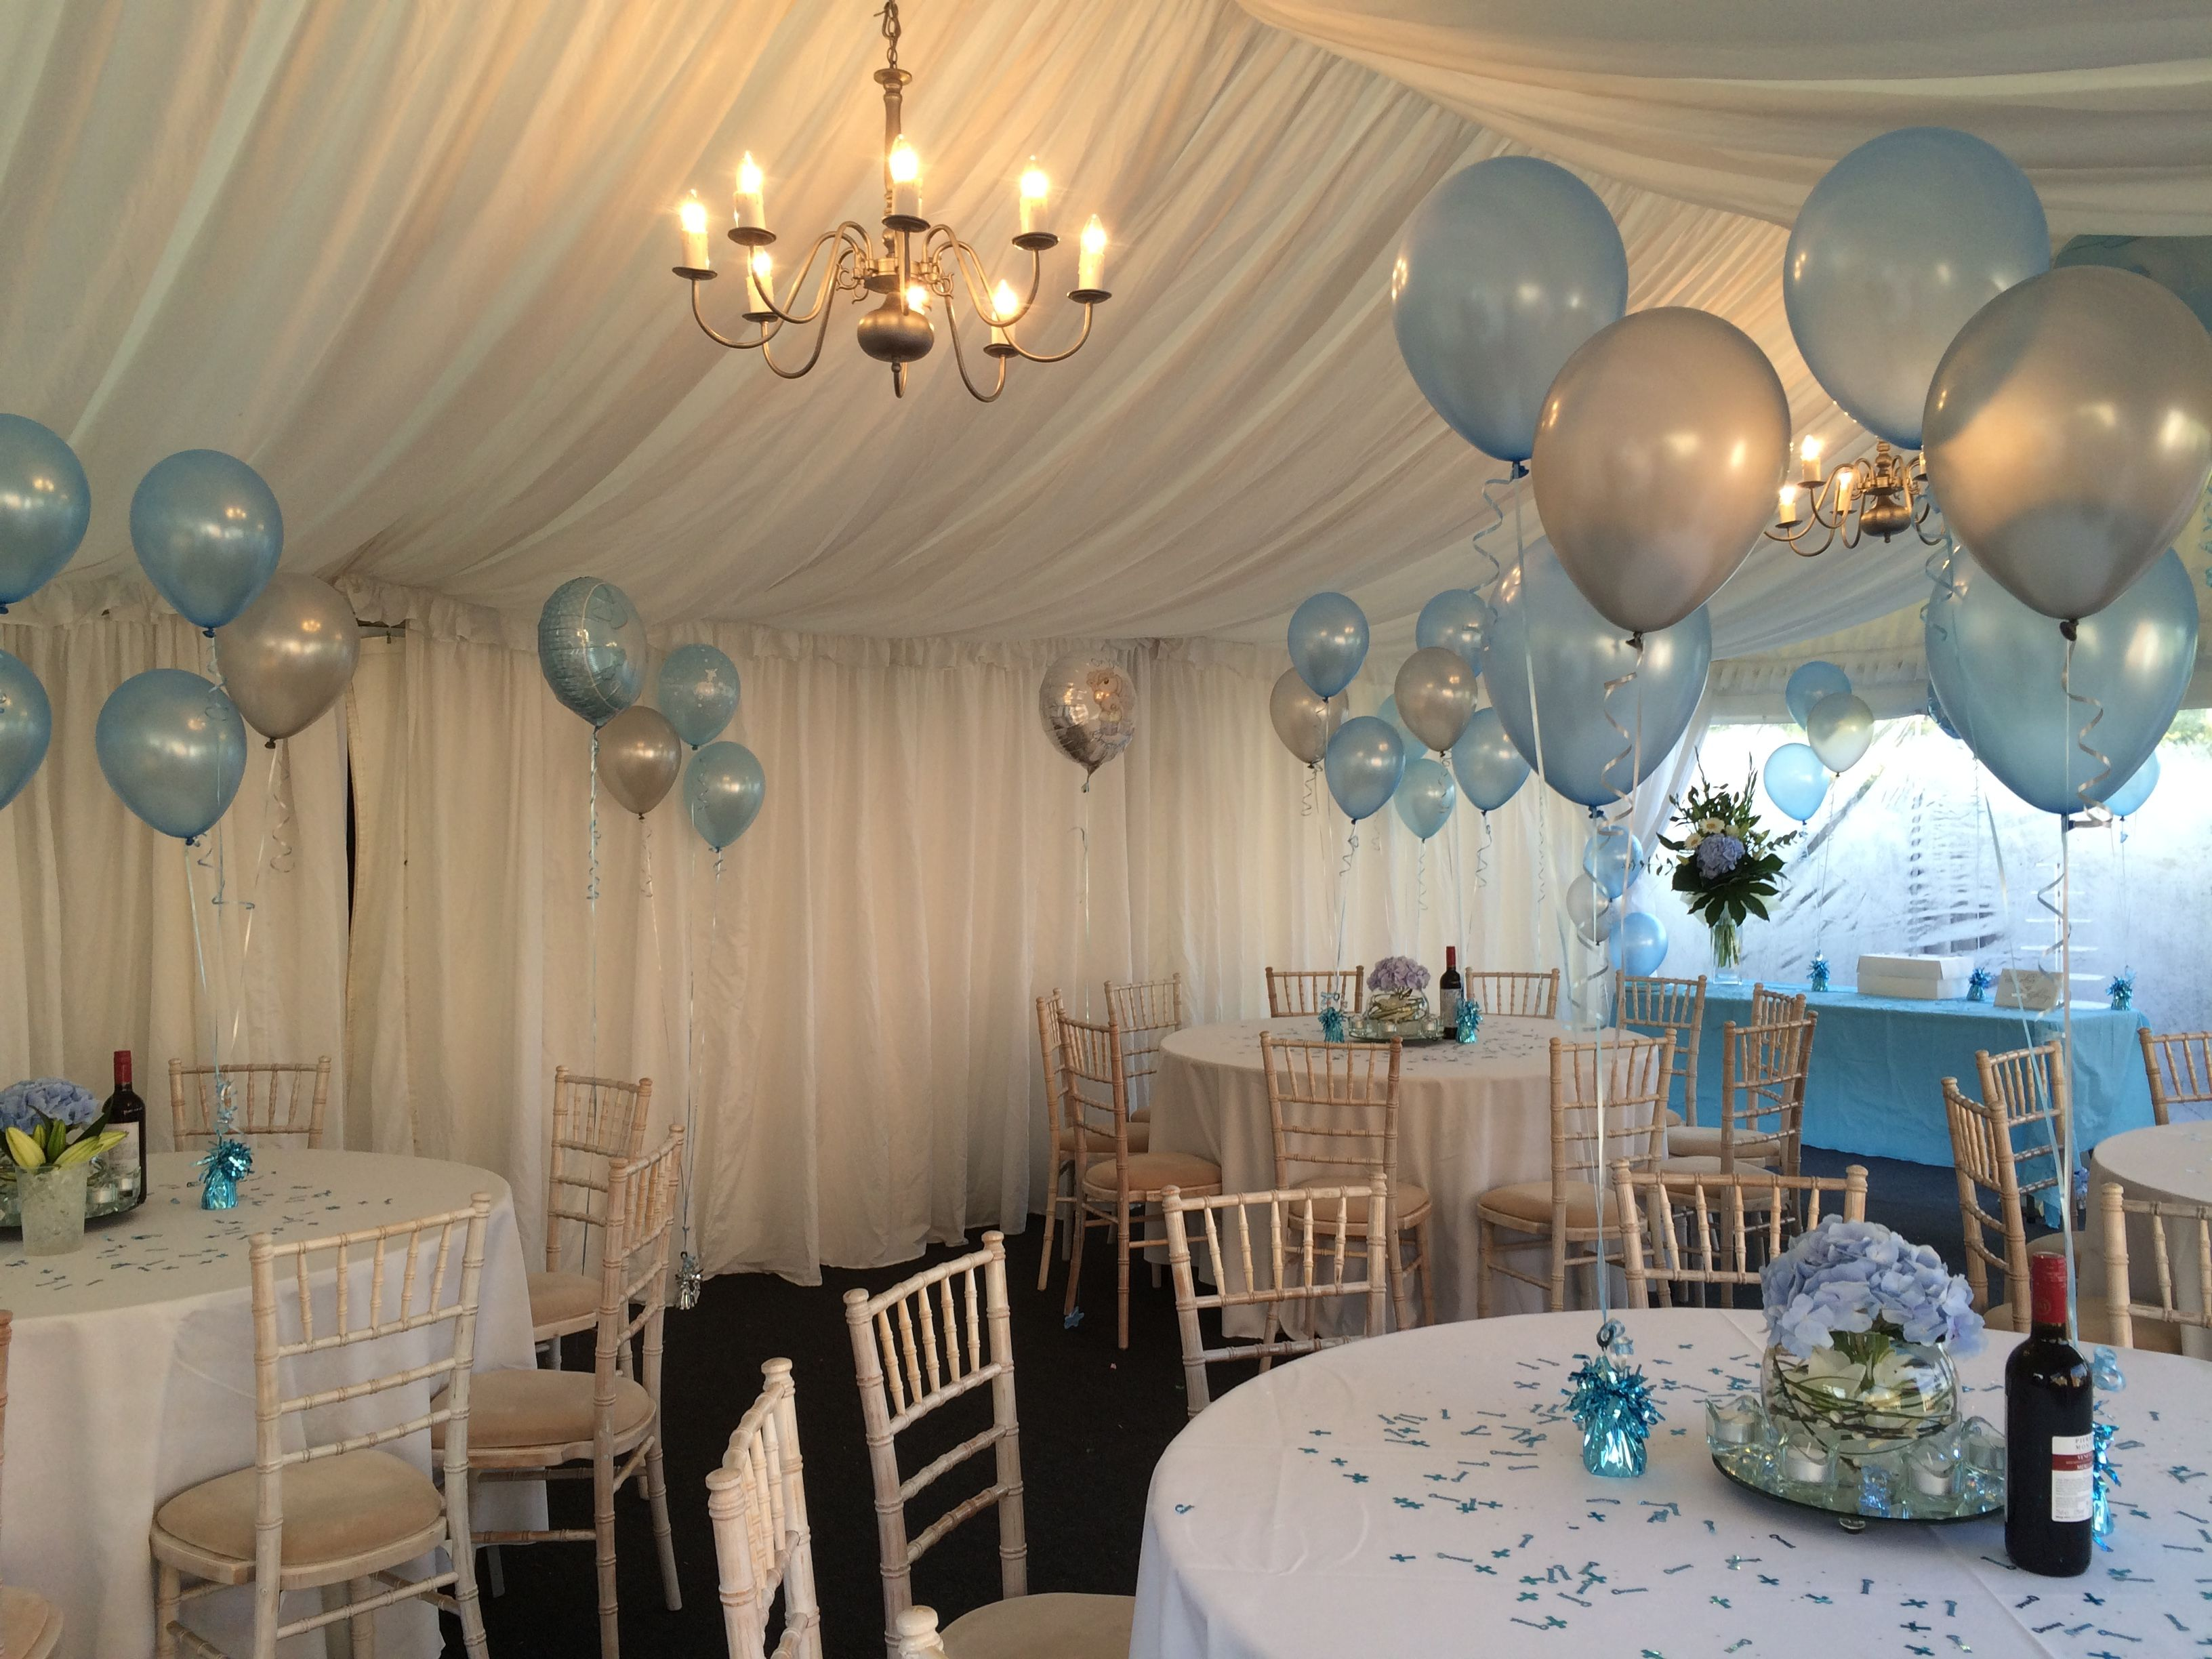 complementary floor and table balloon decorations all ready for the